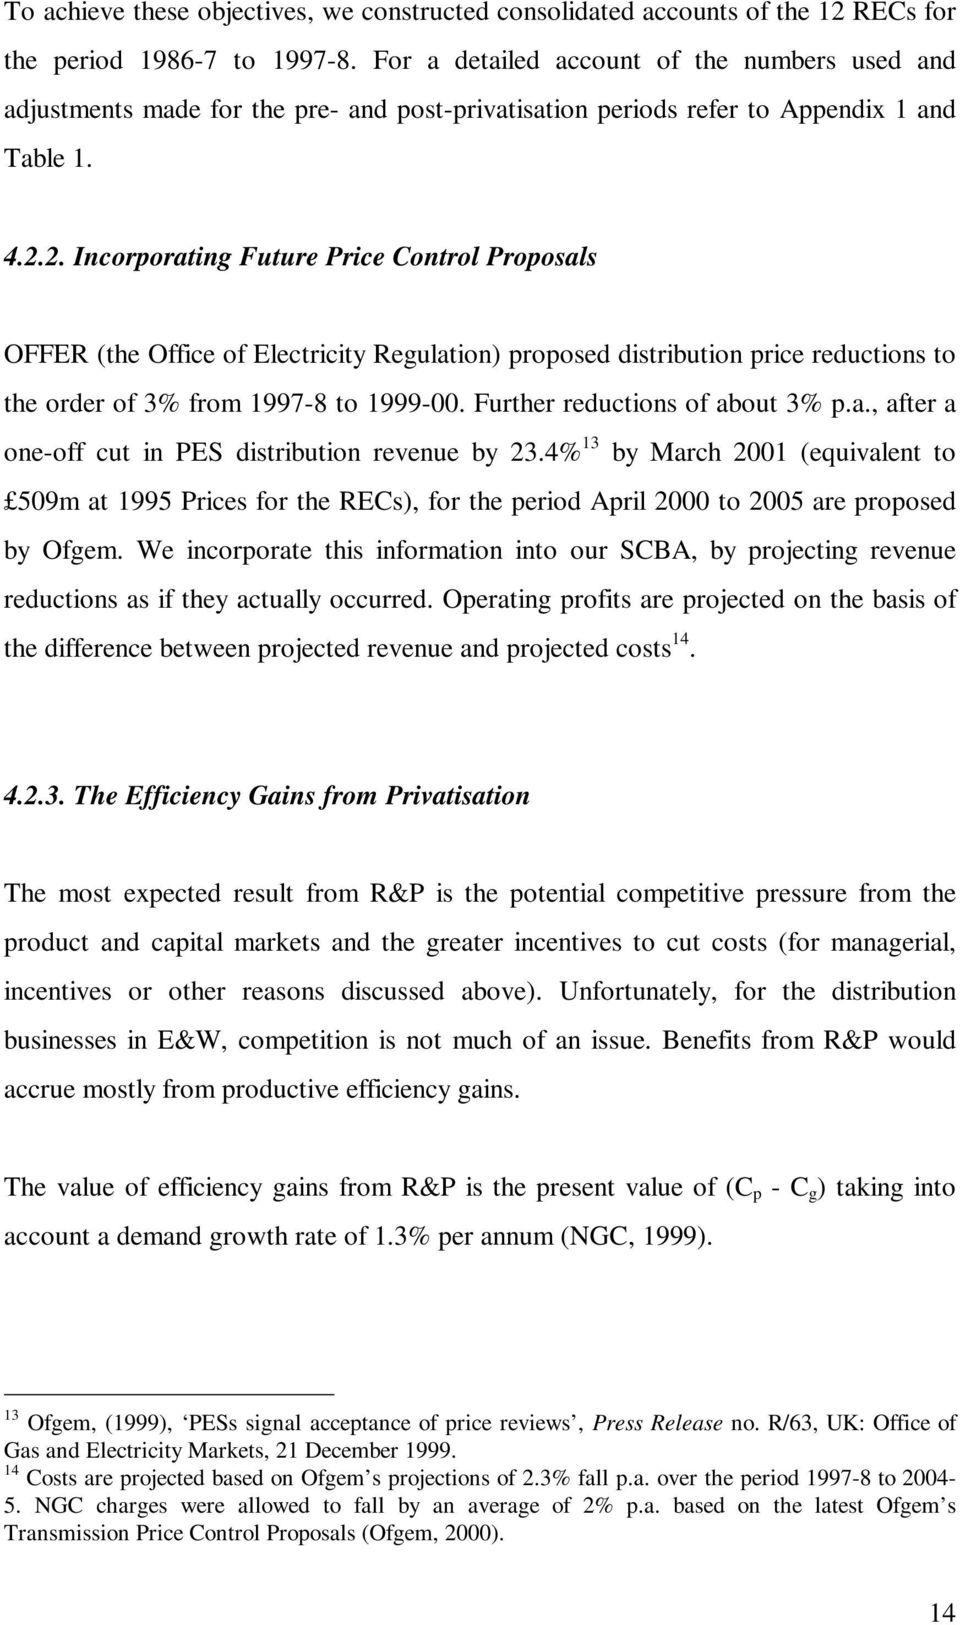 2. Incorporating Future Price Control Proposals OFFER (the Office of Electricity Regulation) proposed distribution price reductions to the order of 3% from 1997-8 to 1999-00.